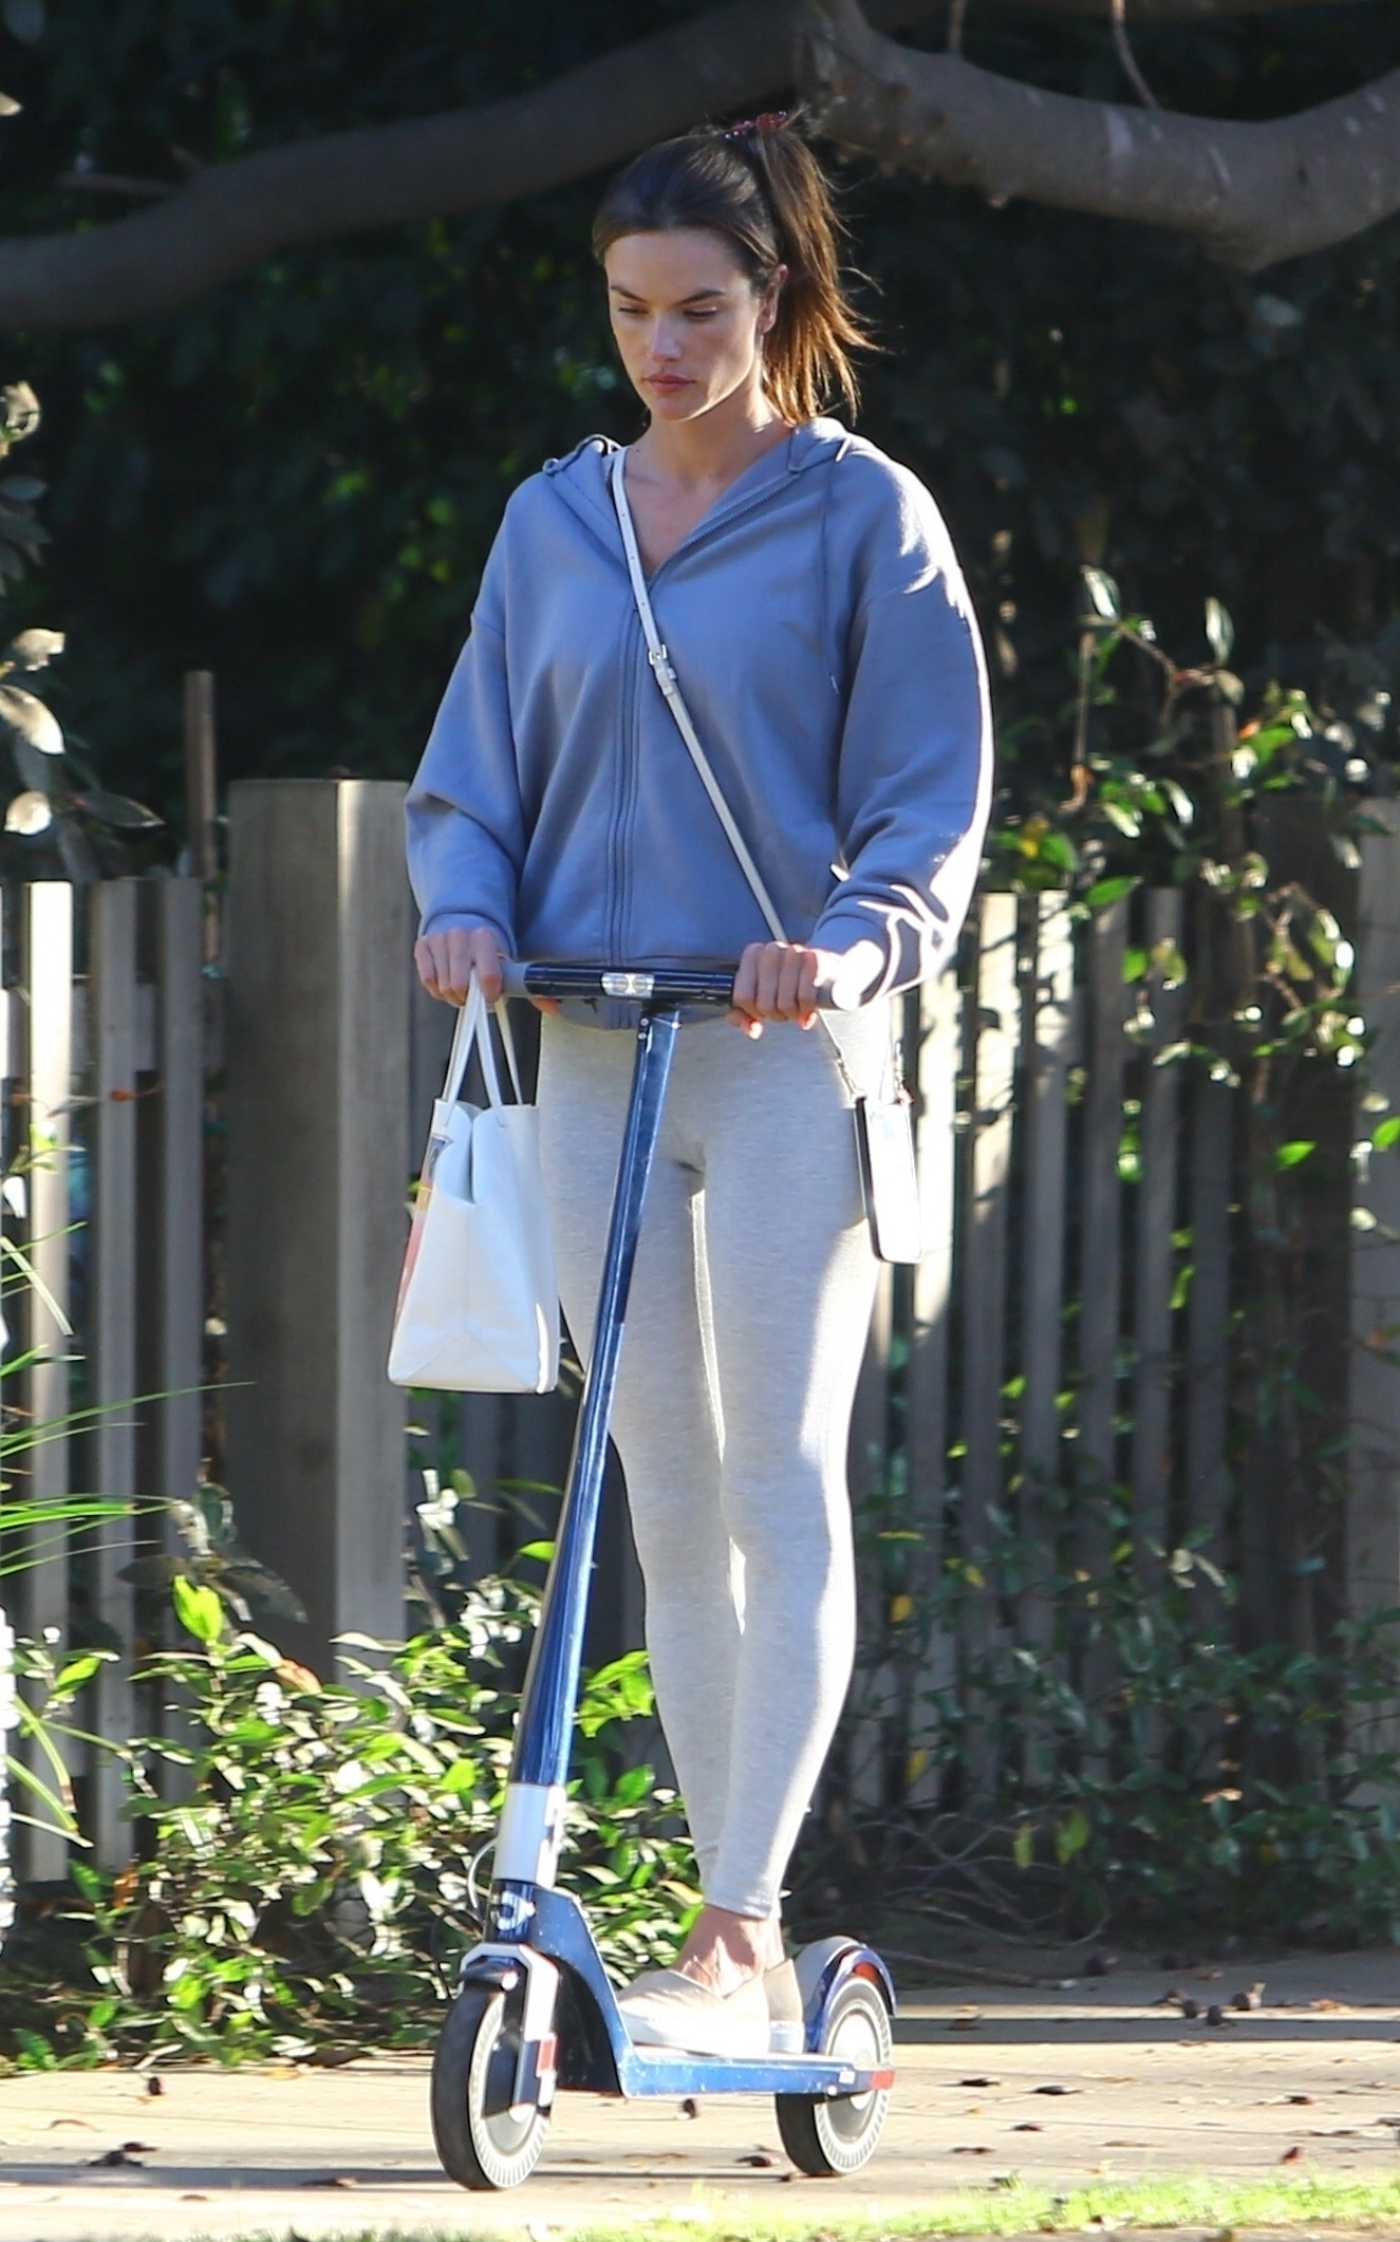 Alessandra Ambrosio in a Grey Leggings Does a Scooter Ride Out in Brentwood 10/13/2021